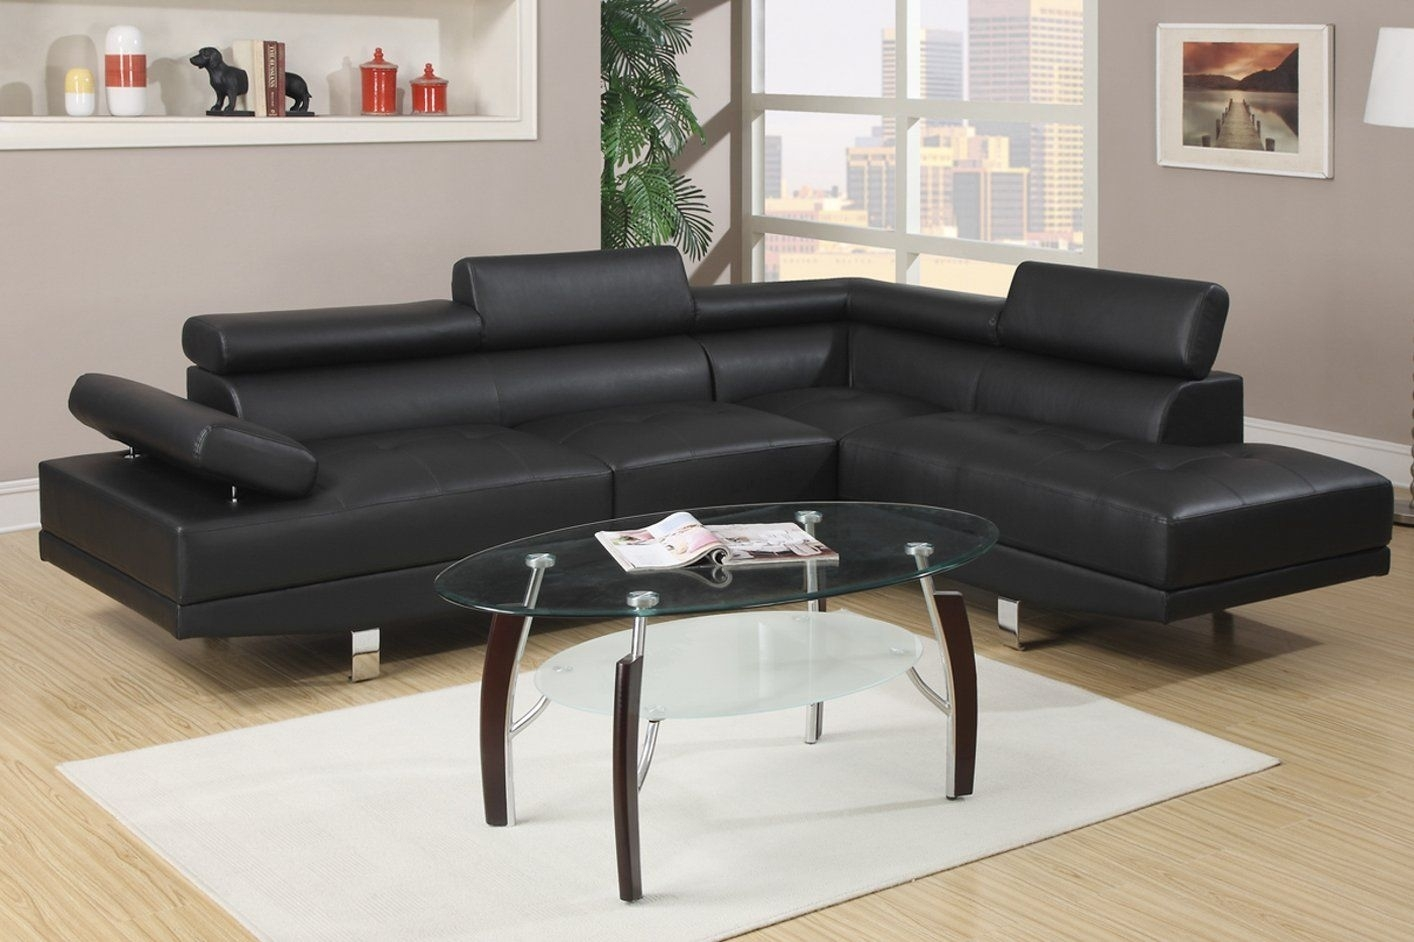 Stunning Sectional Sofa Design Black Leather With Best For And Darie Pertaining To Black Sectional Sofas (View 6 of 10)